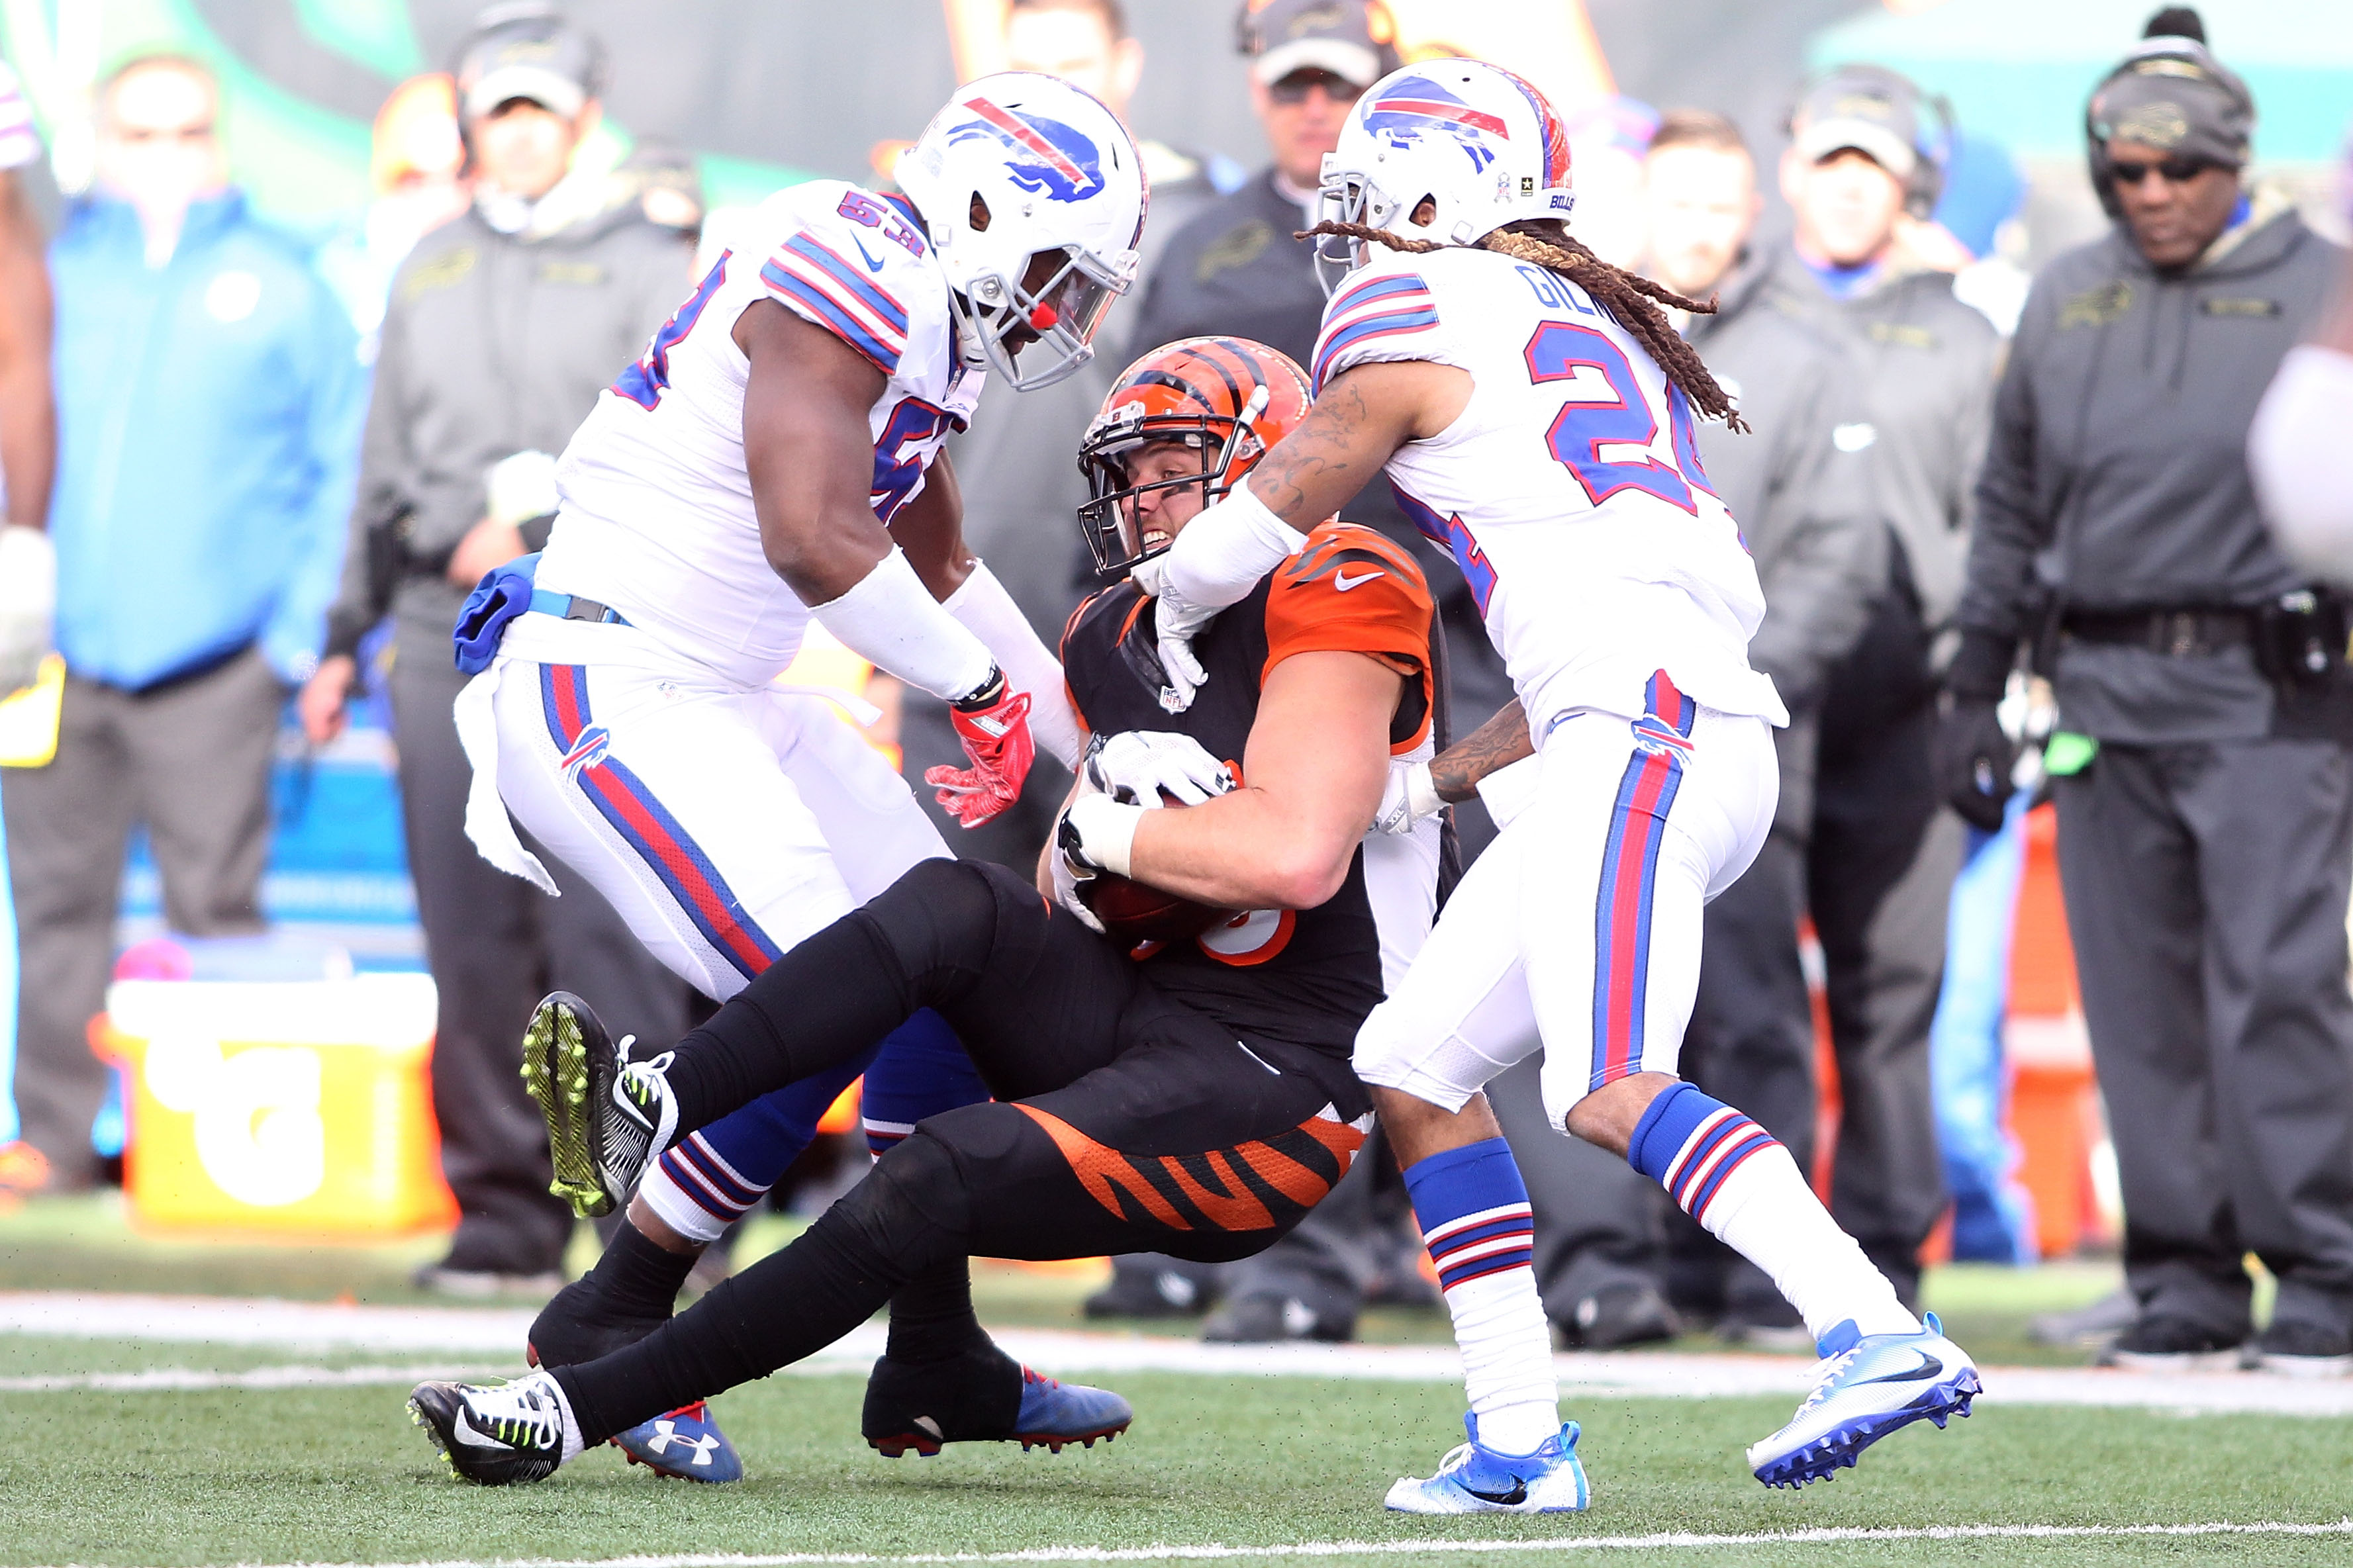 Tyler Eifert of the Cincinnati Bengals is tackled by Stephon Gilmore and Zach Brown (53) during the second quarter. (Getty Images)